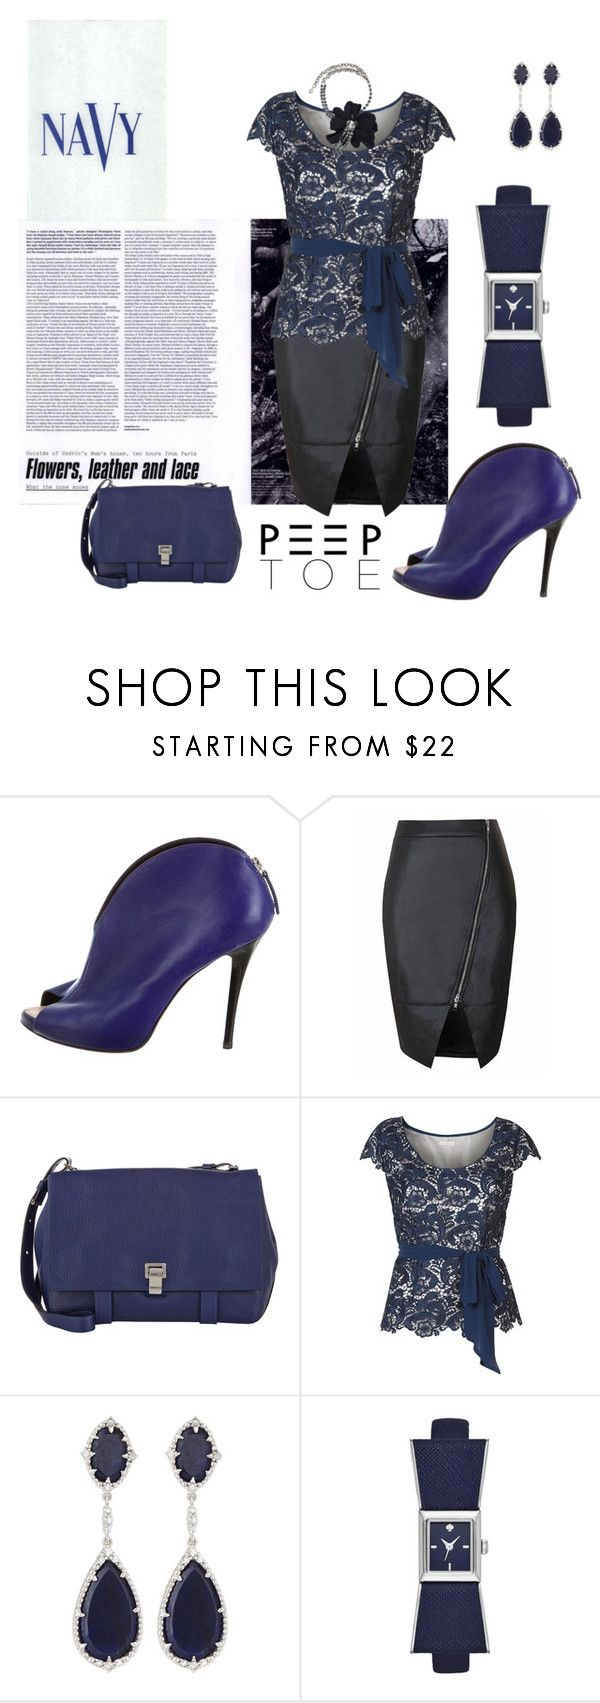 """navy peeptoe pumps"" by agnesmakoni ❤ liked on Polyvore featuring Giuseppe Zanotti, Proenza Schouler, Jacques Vert, Judith Ripka, Kate Spade, Lanvin, COVERGIRL, Pumps and peeptoe"